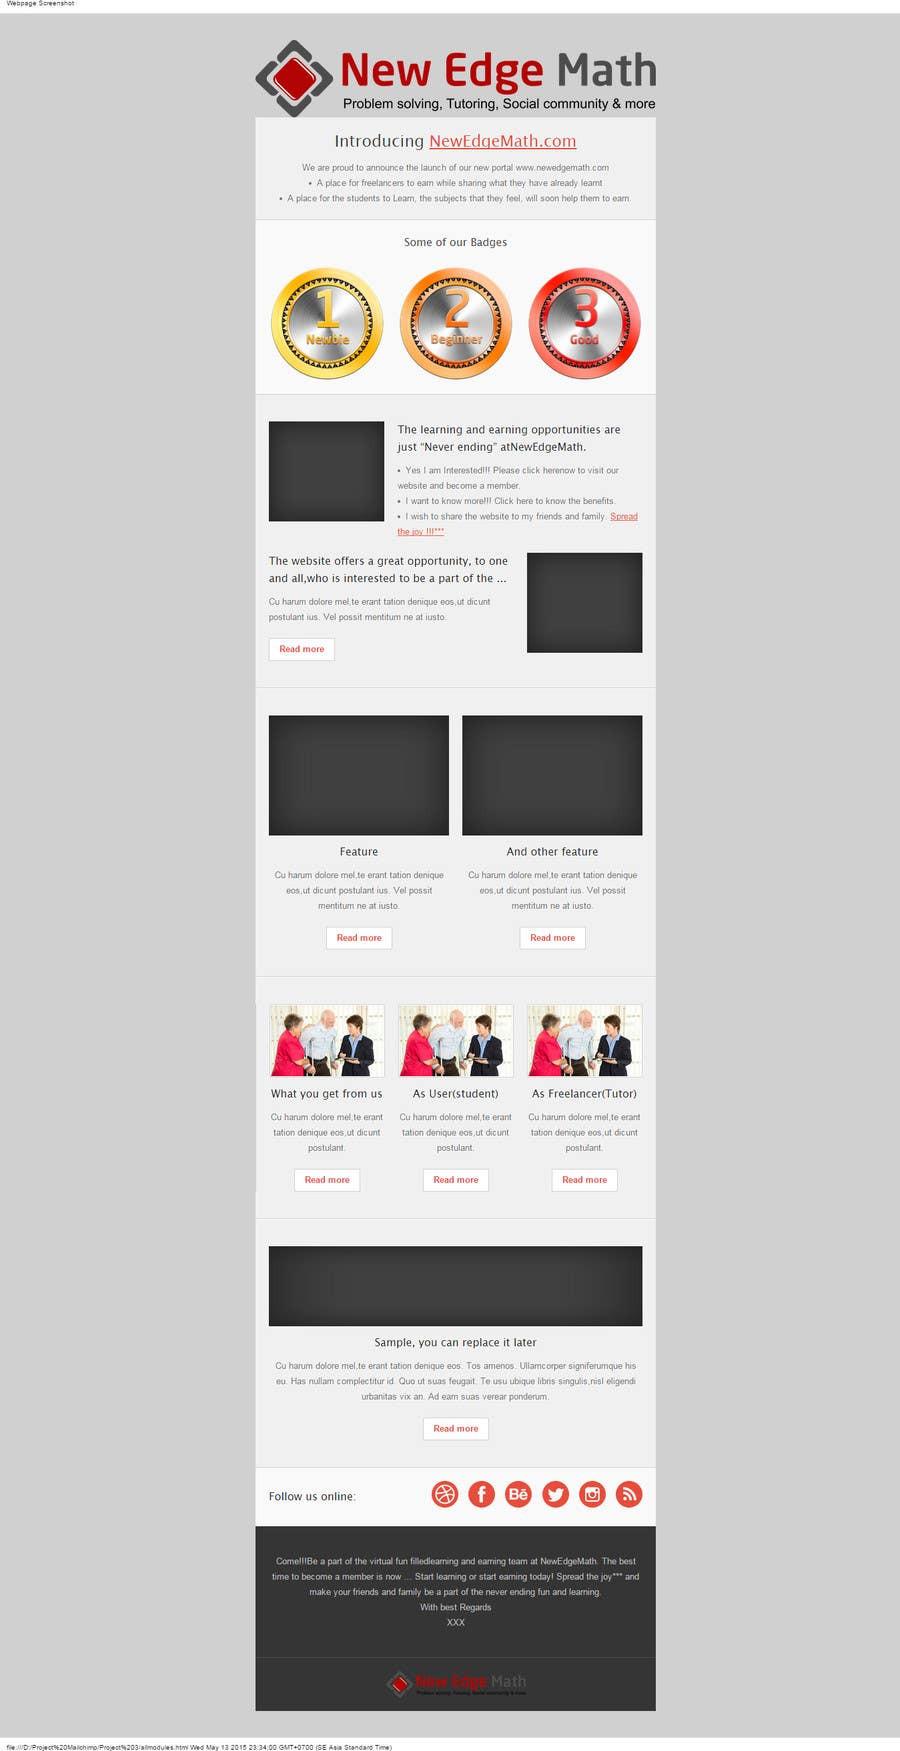 Konkurrenceindlæg #                                        11                                      for                                         Design email template and rewrite email content